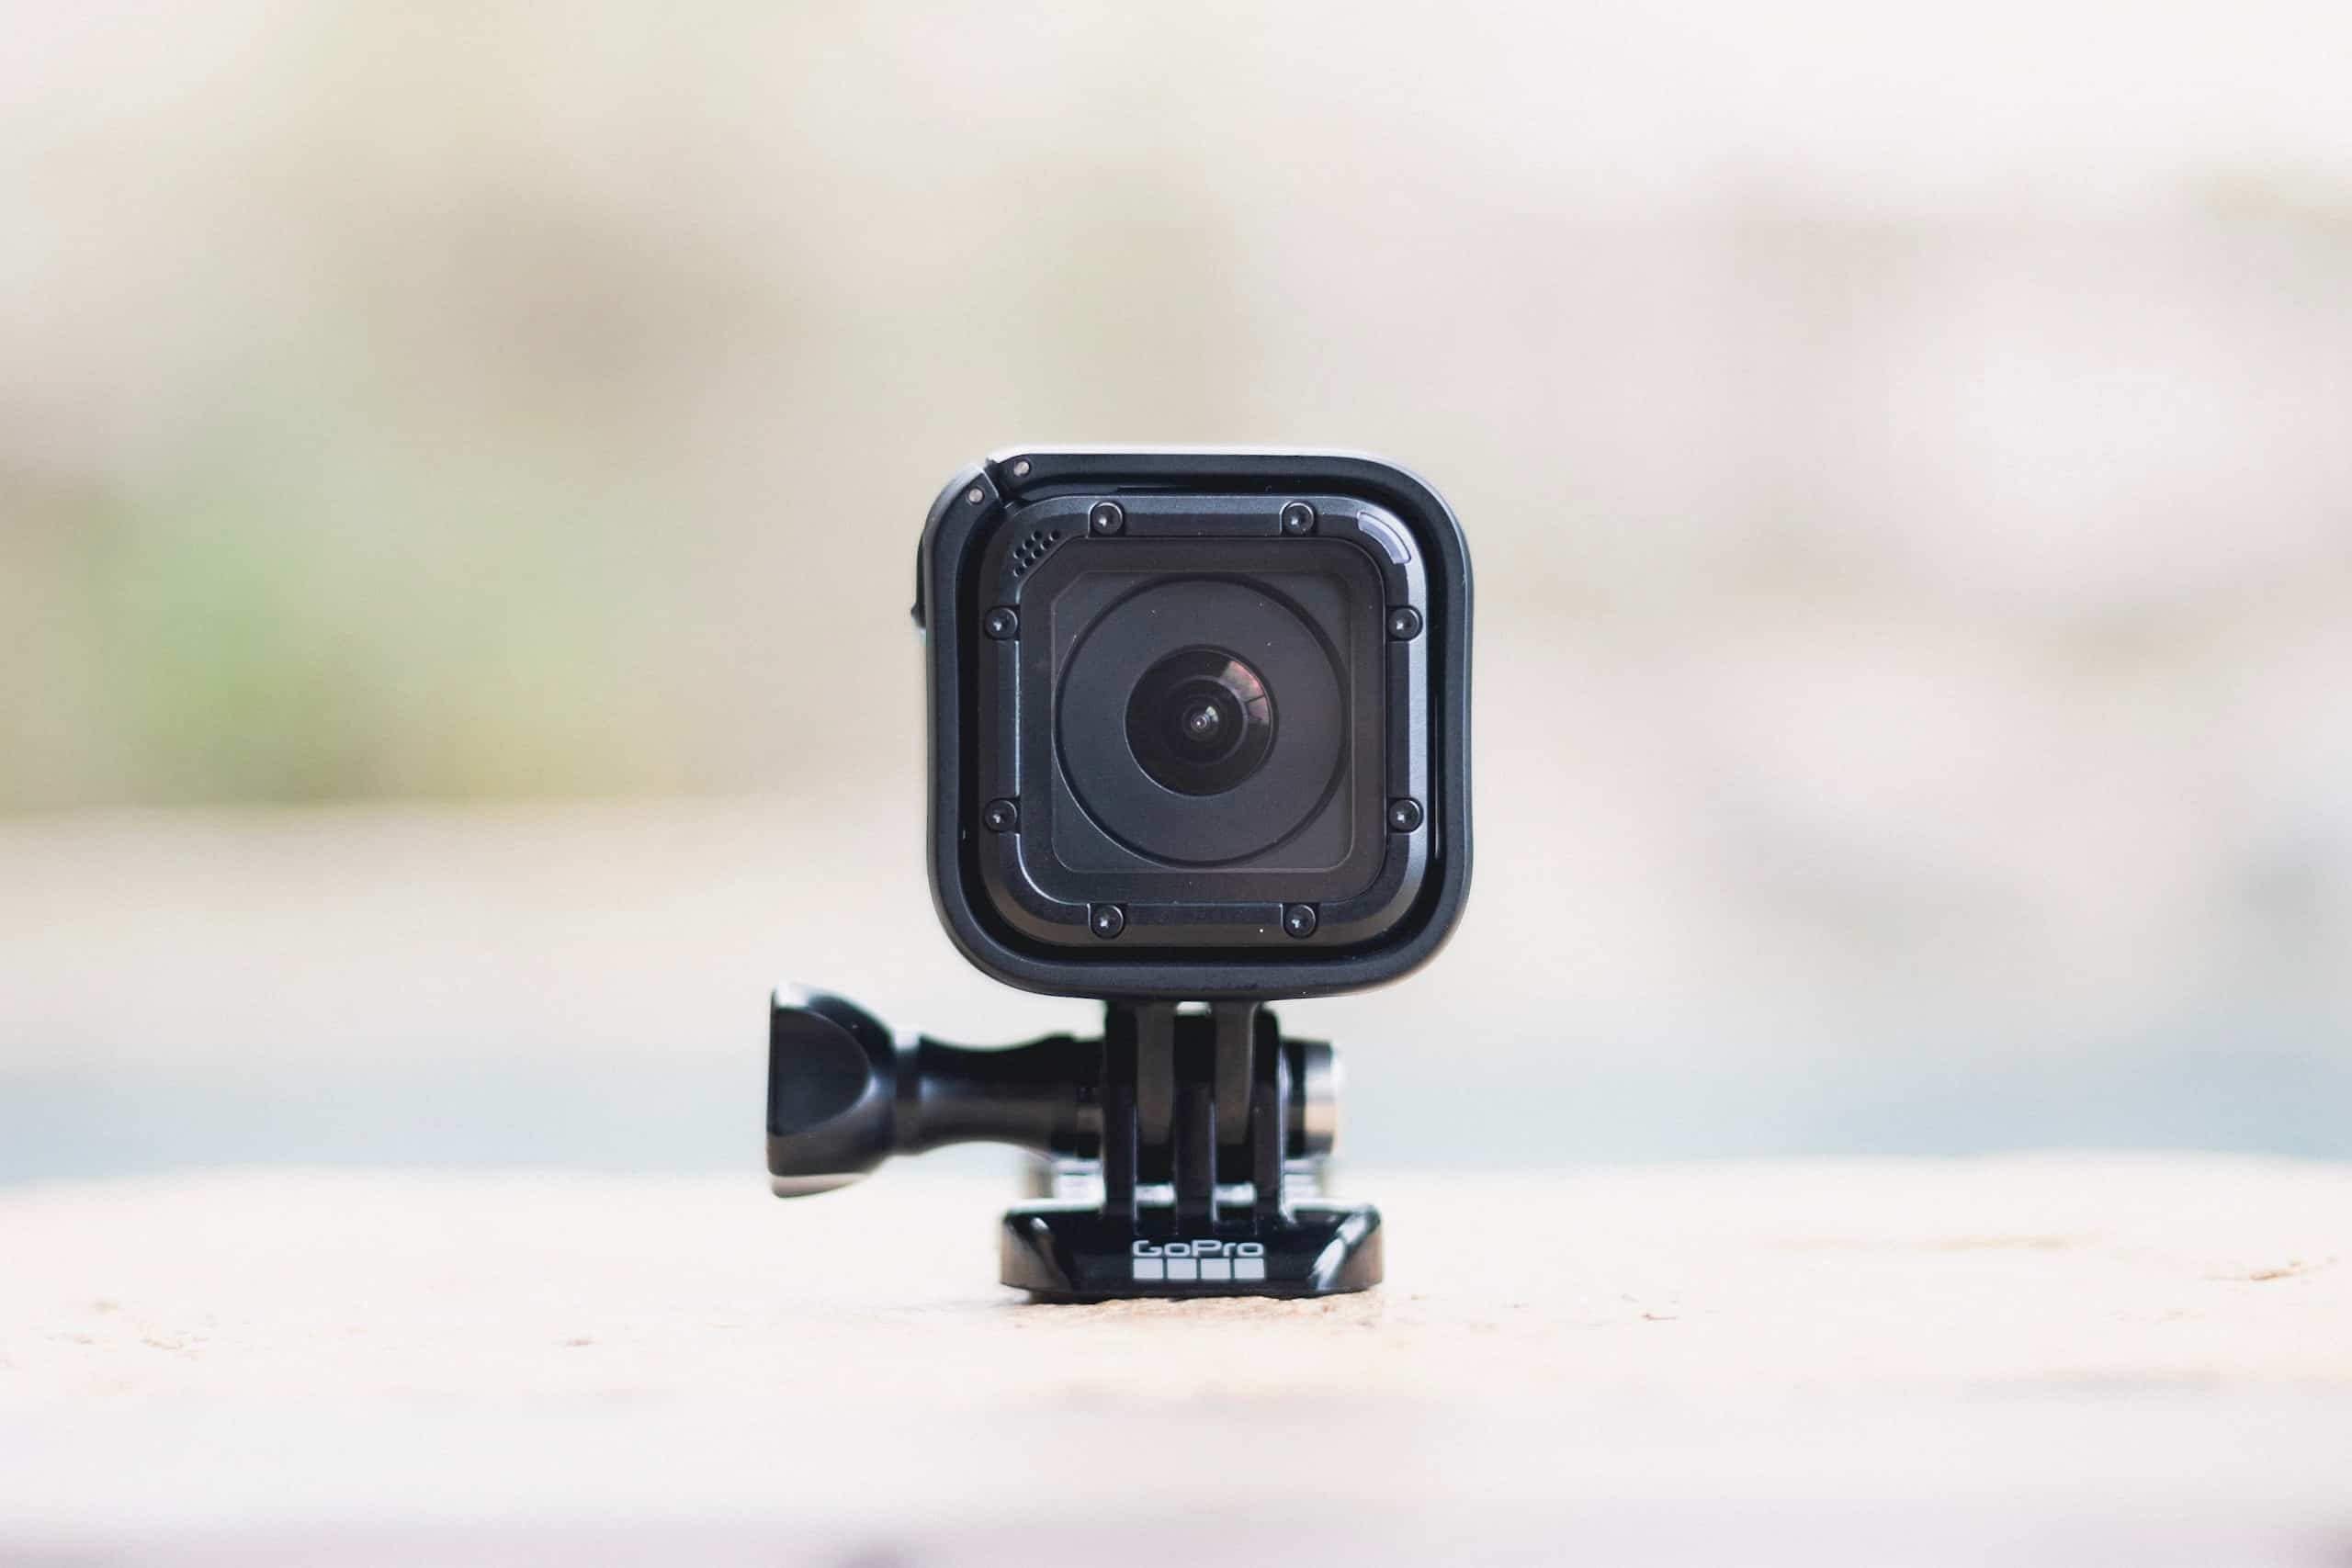 The Best Action Cameras Under $100 In 2019 (By Each Category)